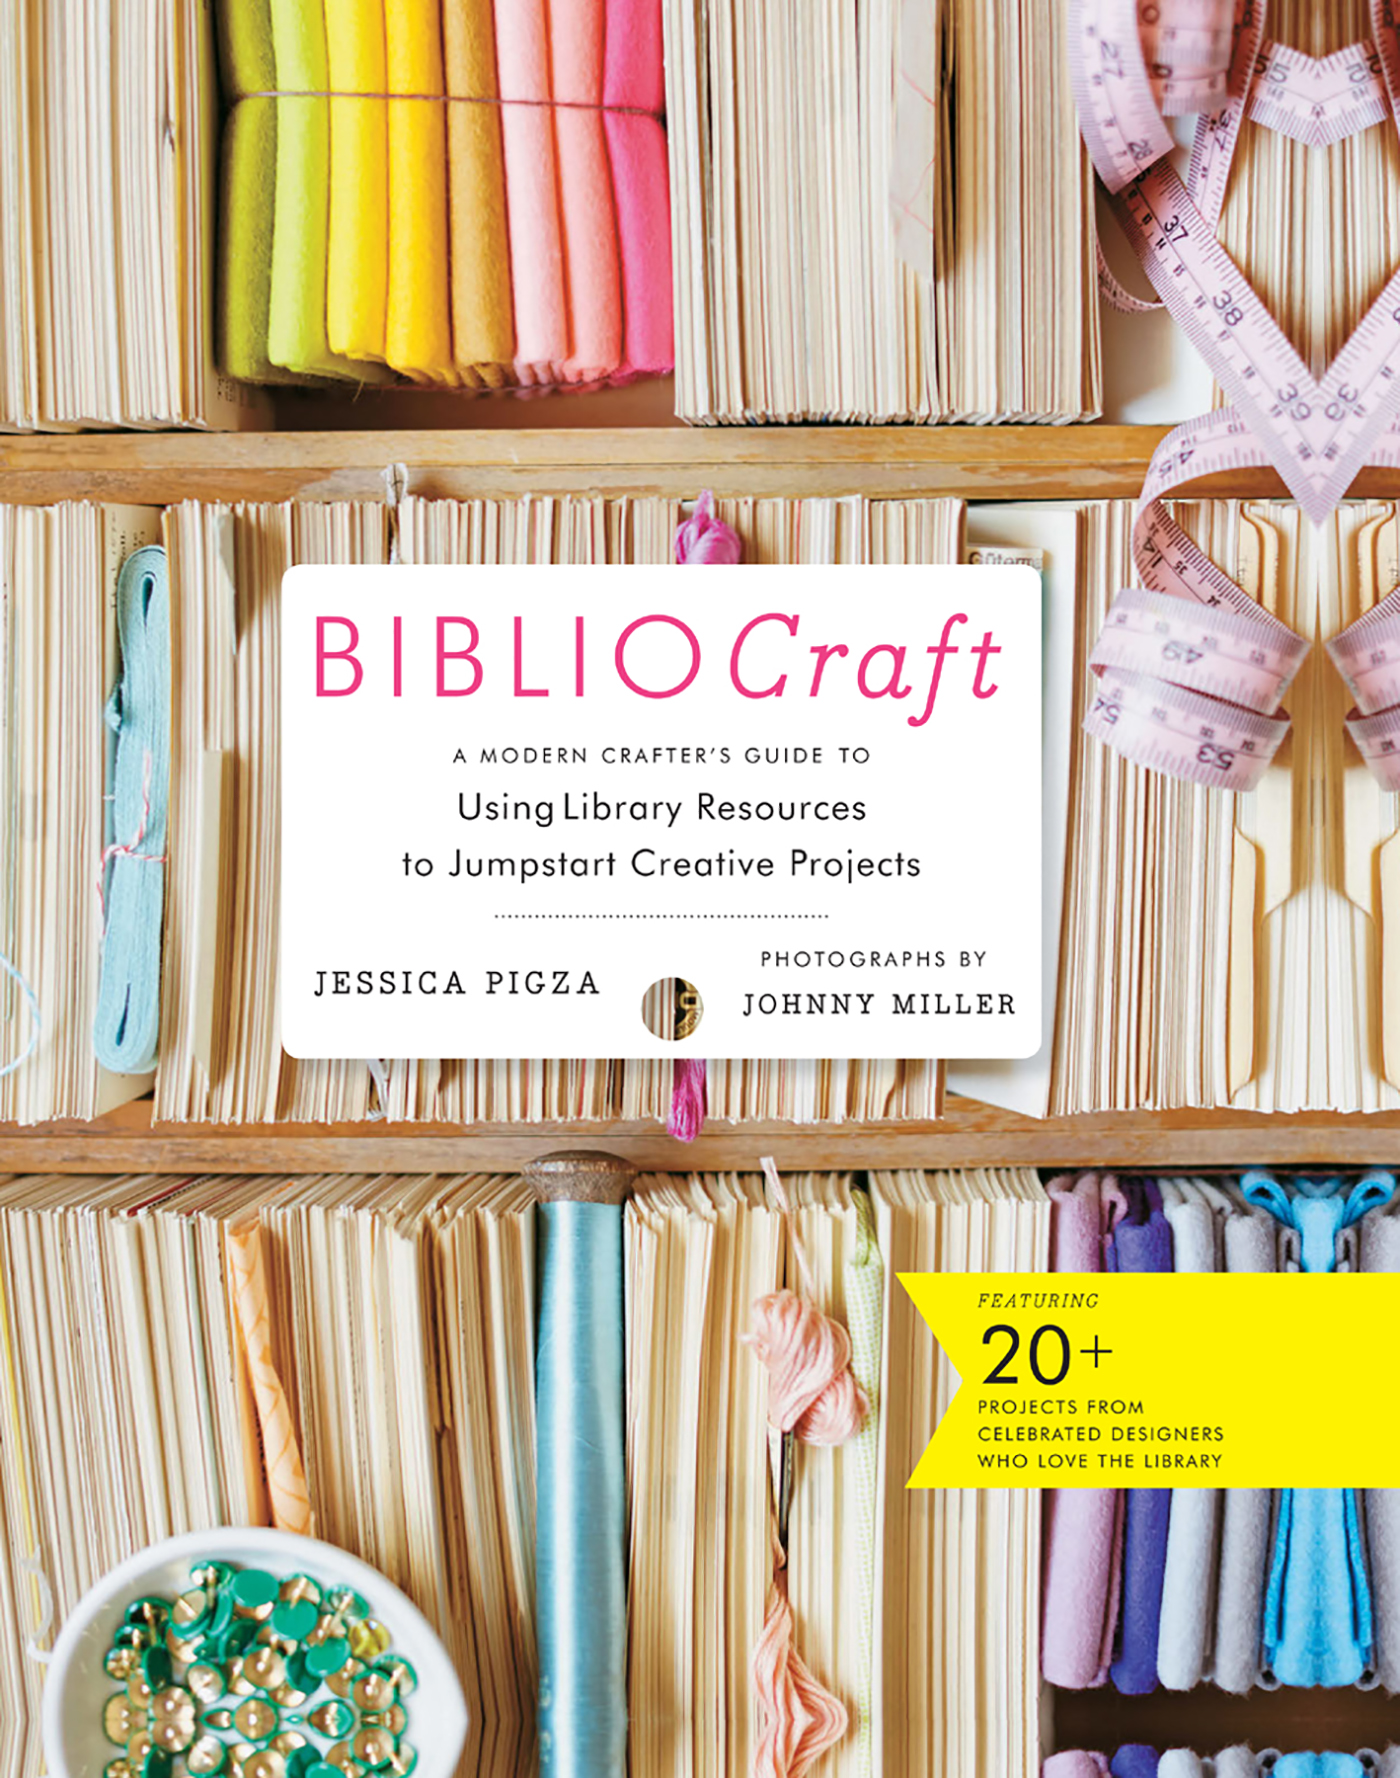 BiblioCraft A Modern Crafter's Guide to Using Library Resources to Jumpstart Creative Projects